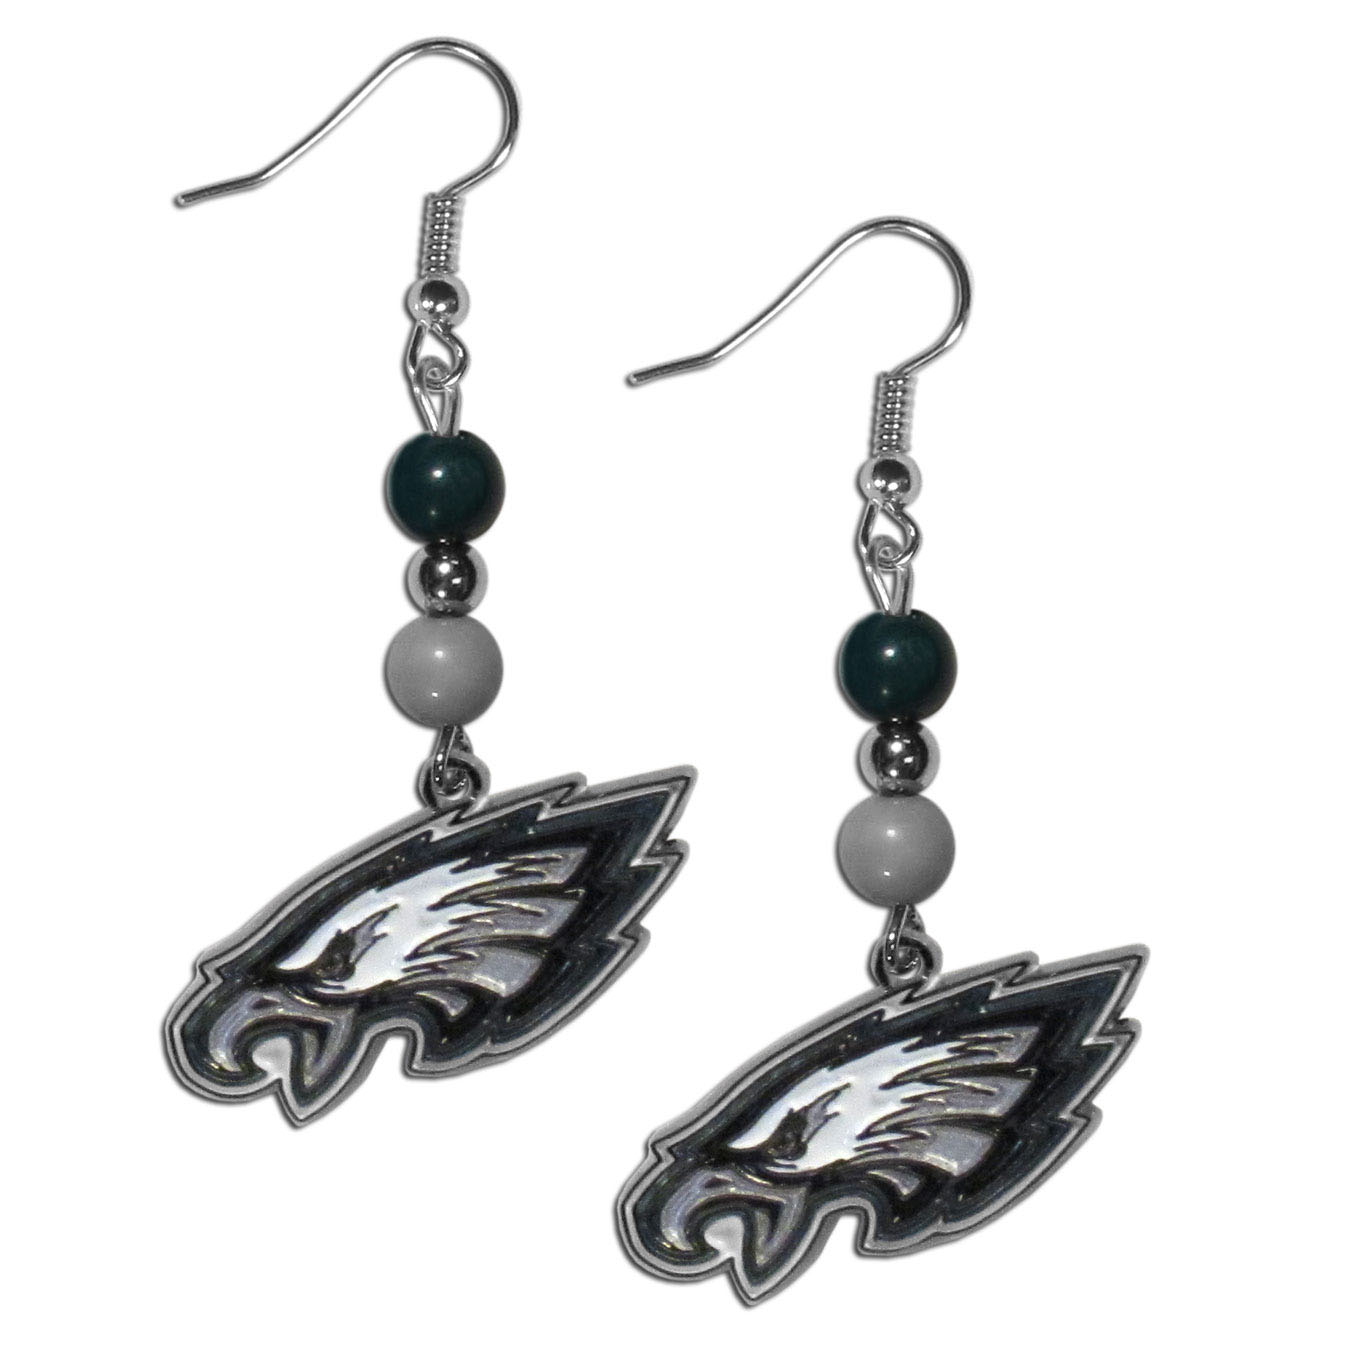 Philadelphia Eagles Fan Bead Dangle Earrings - Love your team, show it off with our Philadelphia Eagles bead dangle earrings! These super cute earrings hang approximately 2 inches and features 2 team colored beads and a high polish team charm. A must have for game day!